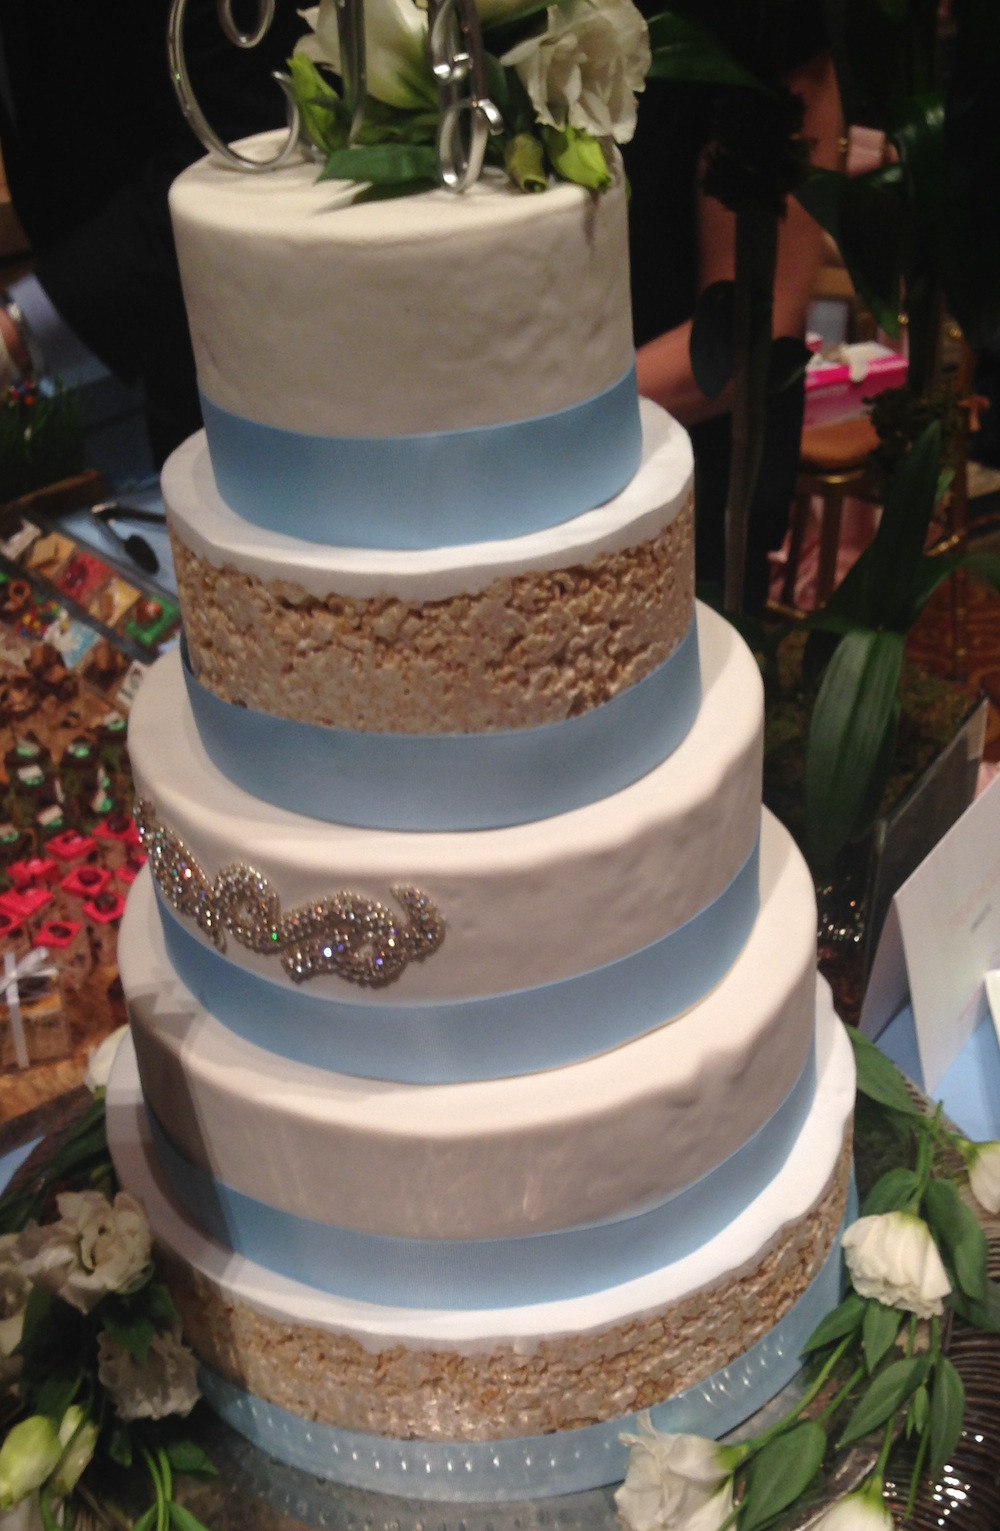 Rice Krispie Wedding Cakes  Top Wedding Trends for 2014 direct from the Martha